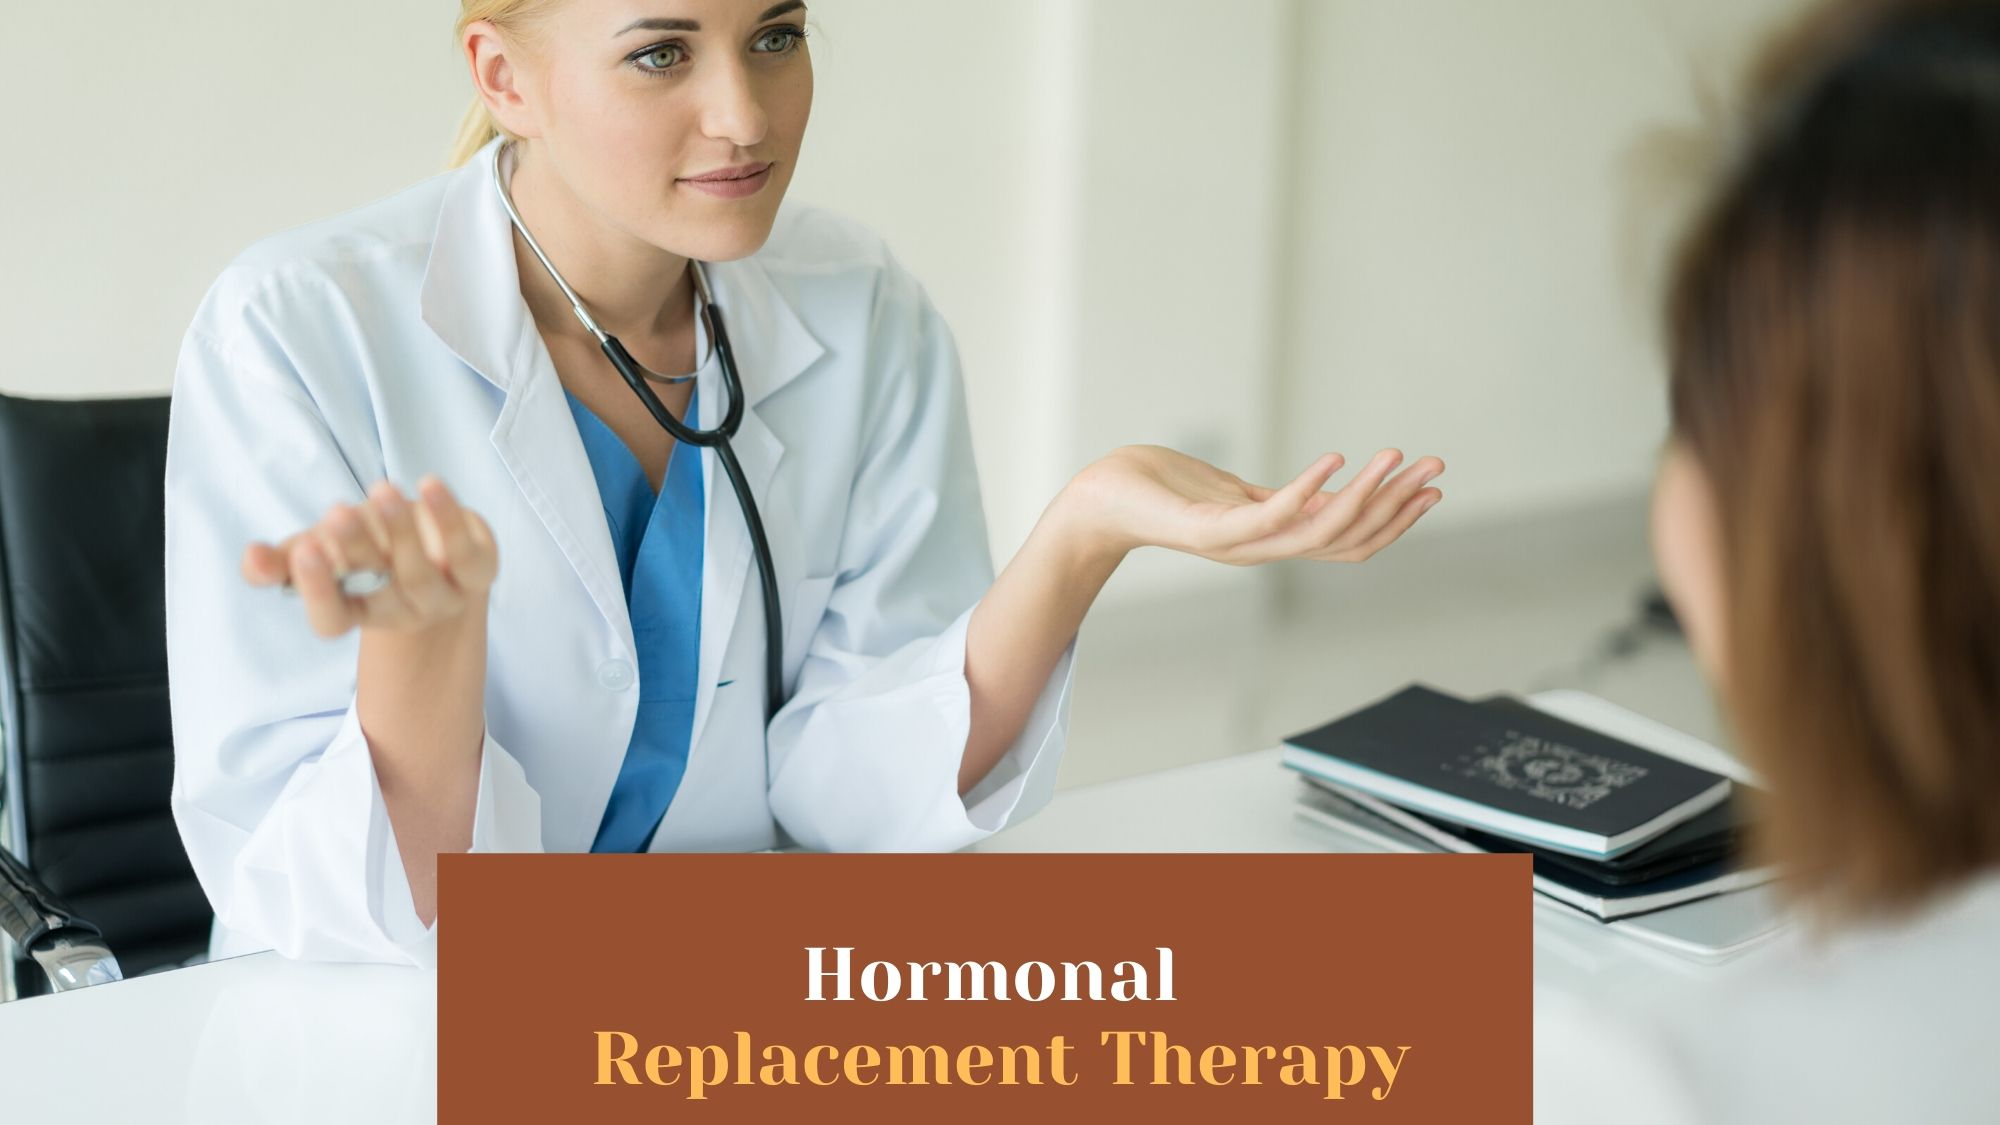 Everything You Should Know about Hormonal Replacement Therapy